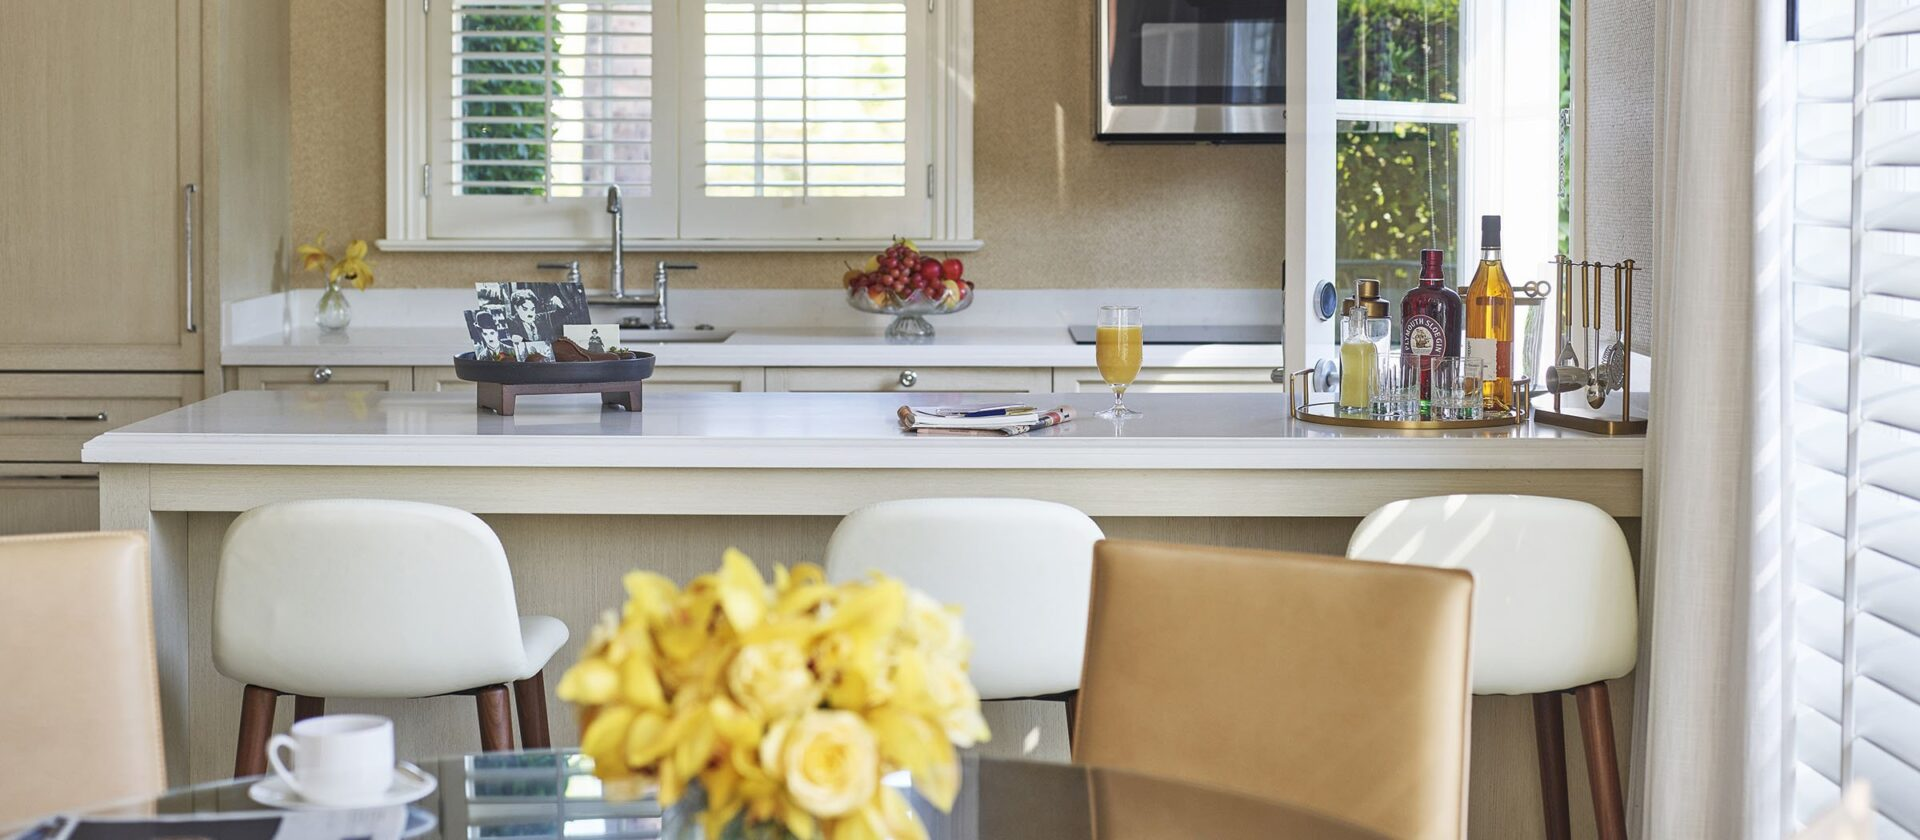 Open kitchen with island and dining room table